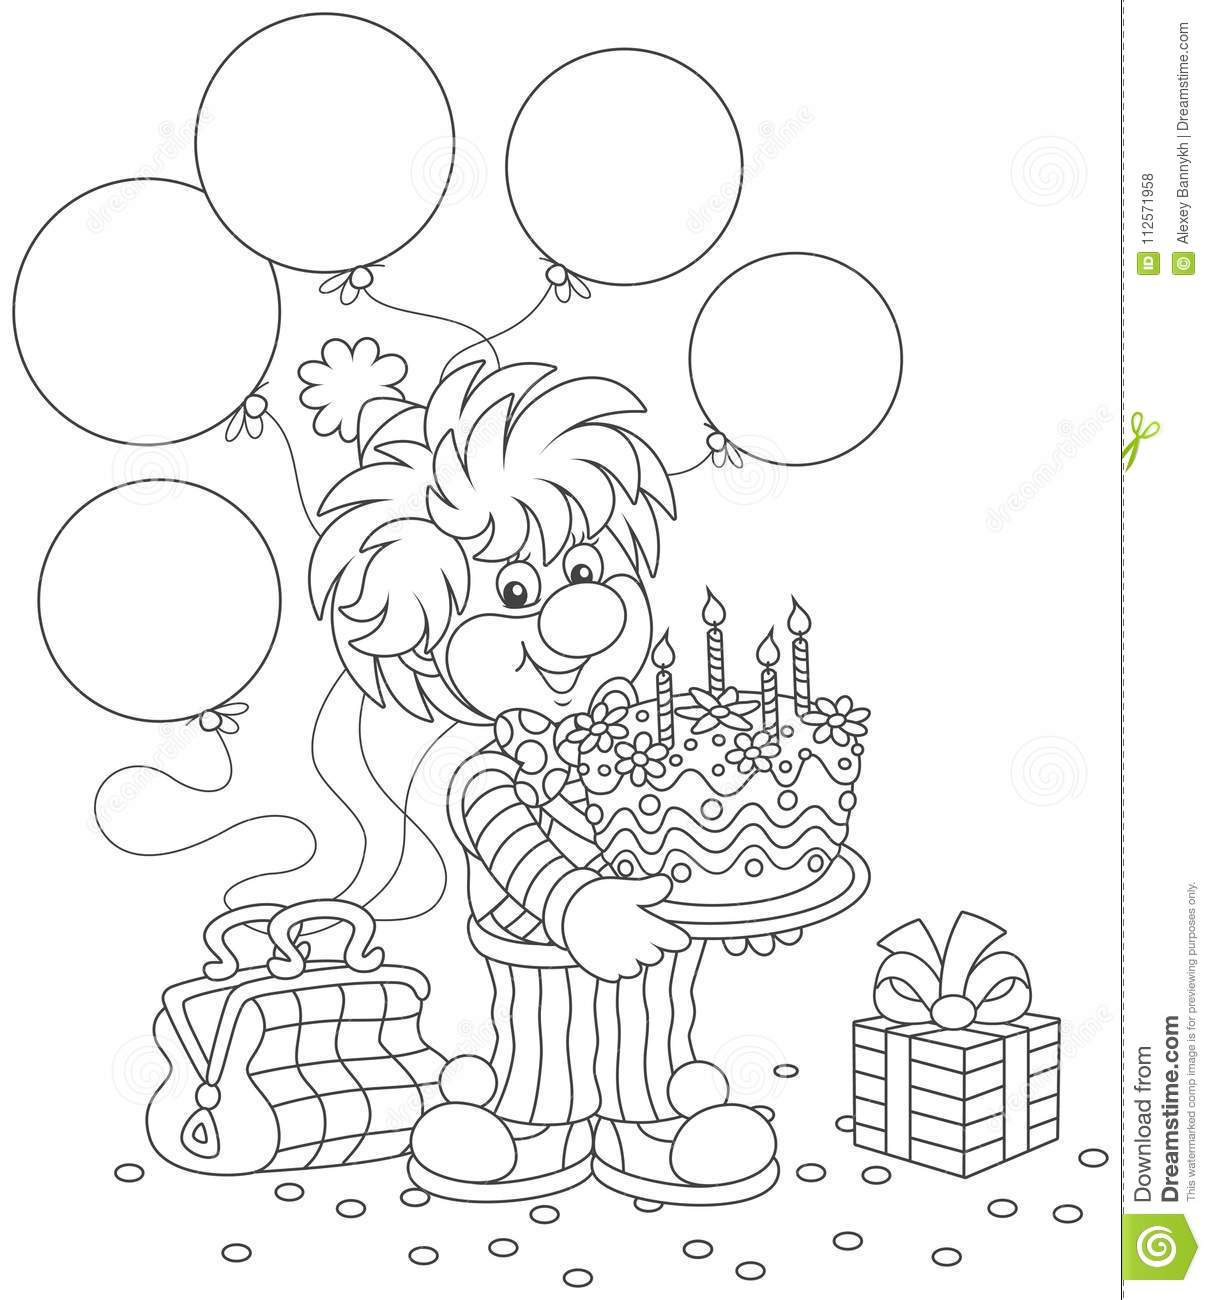 Circus Clown With Birthday Cake Stock Vector - Illustration of ...